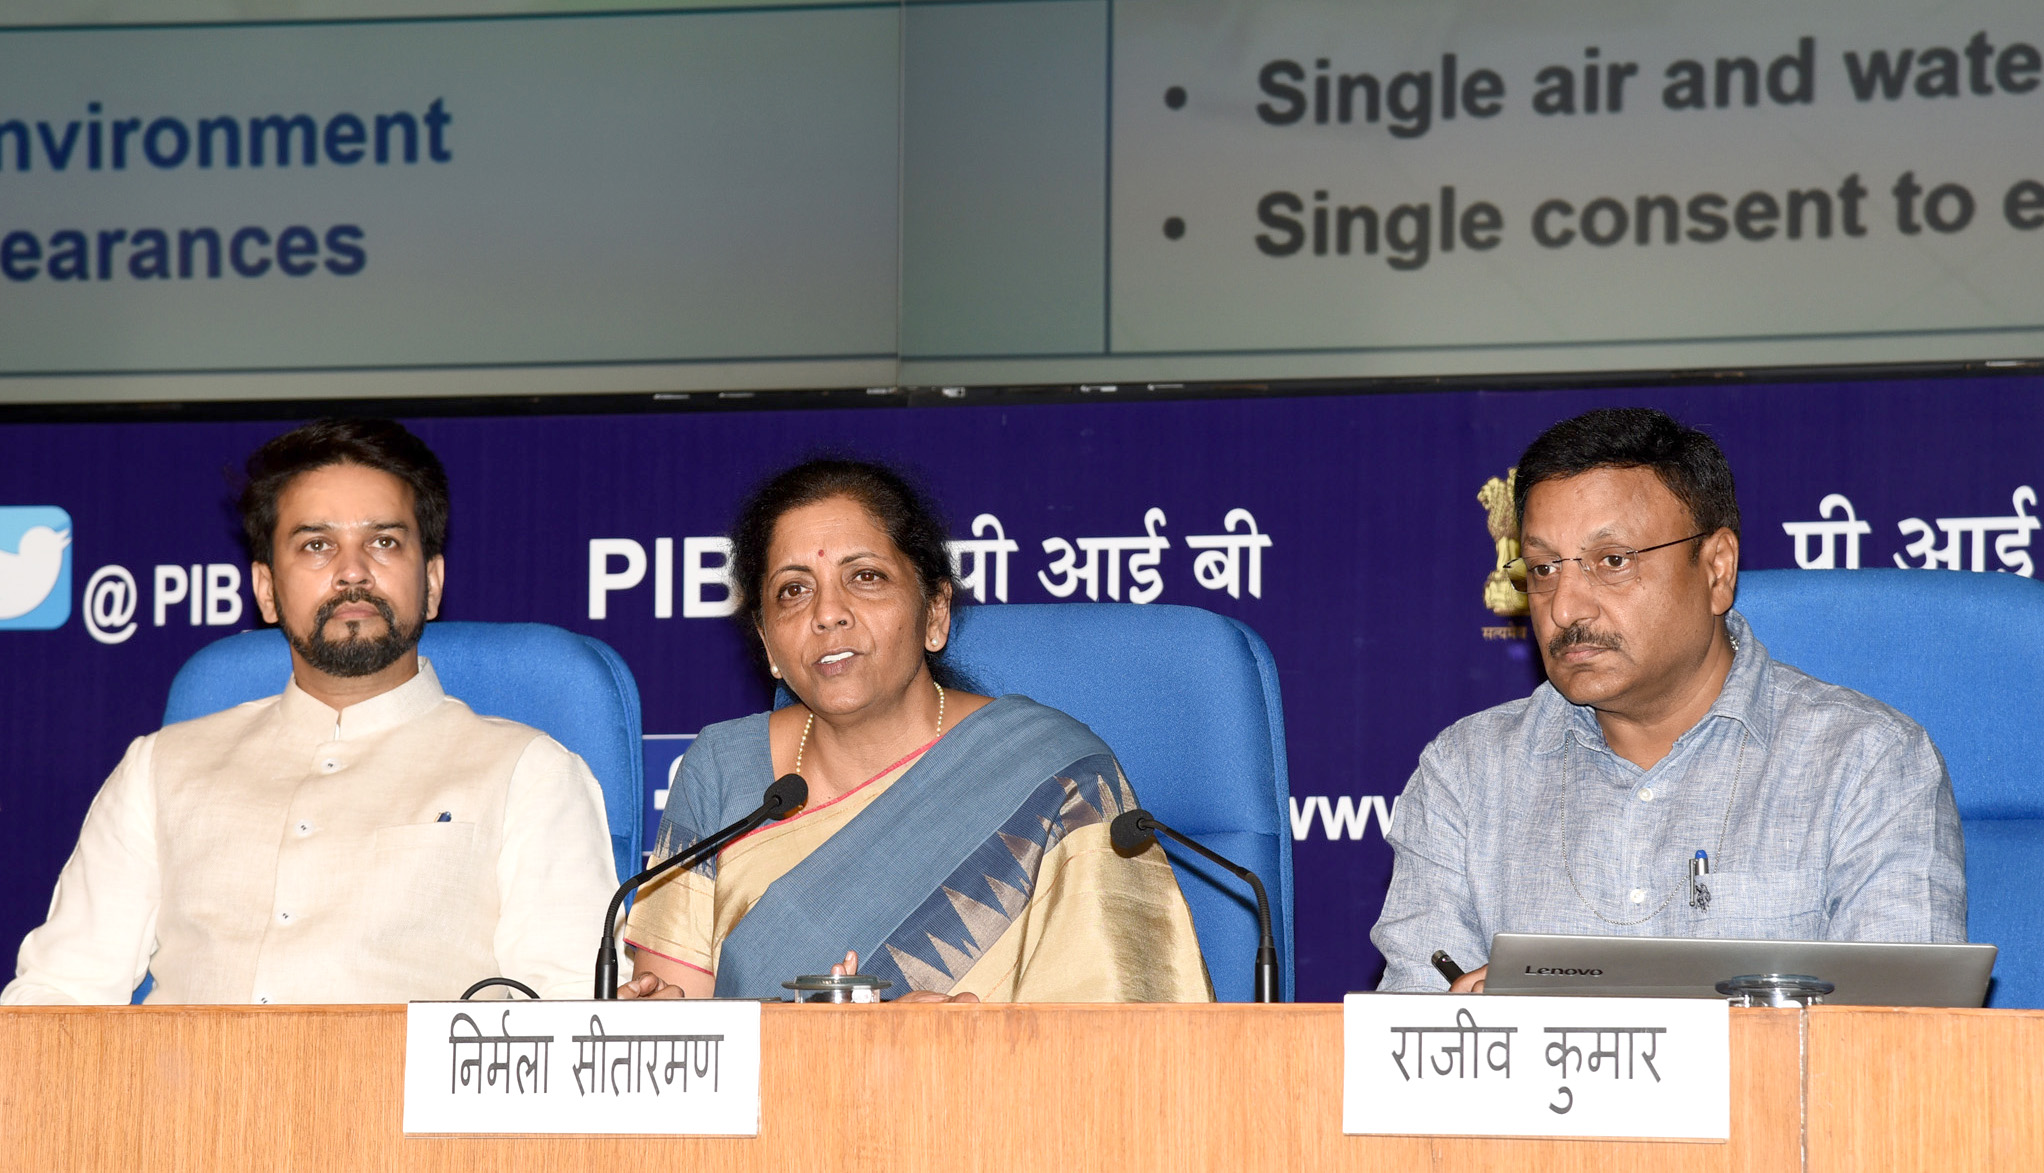 The Union Minister for Finance and Corporate Affairs, Smt. Nirmala Sitharaman addressing a press conference, in New Delhi on August 23, 2019.